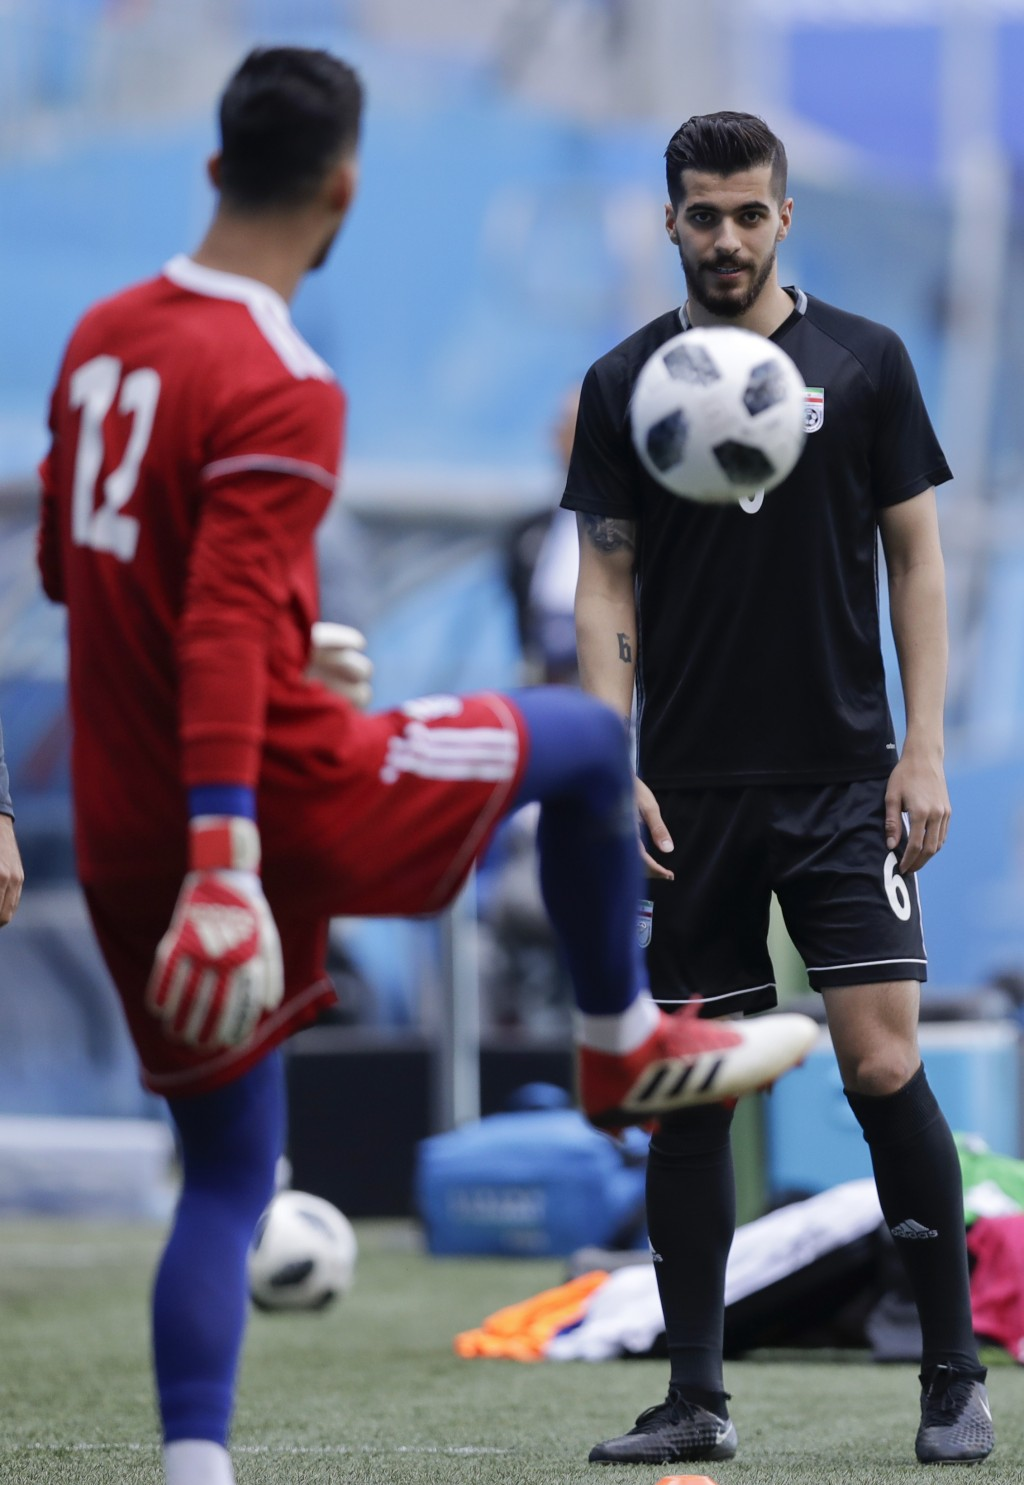 Iran goalkeeper Amir Abedzadeh, left, and Iran's Saeid Ezatolahi practice during the official training of Iran on the eve of the group B match between